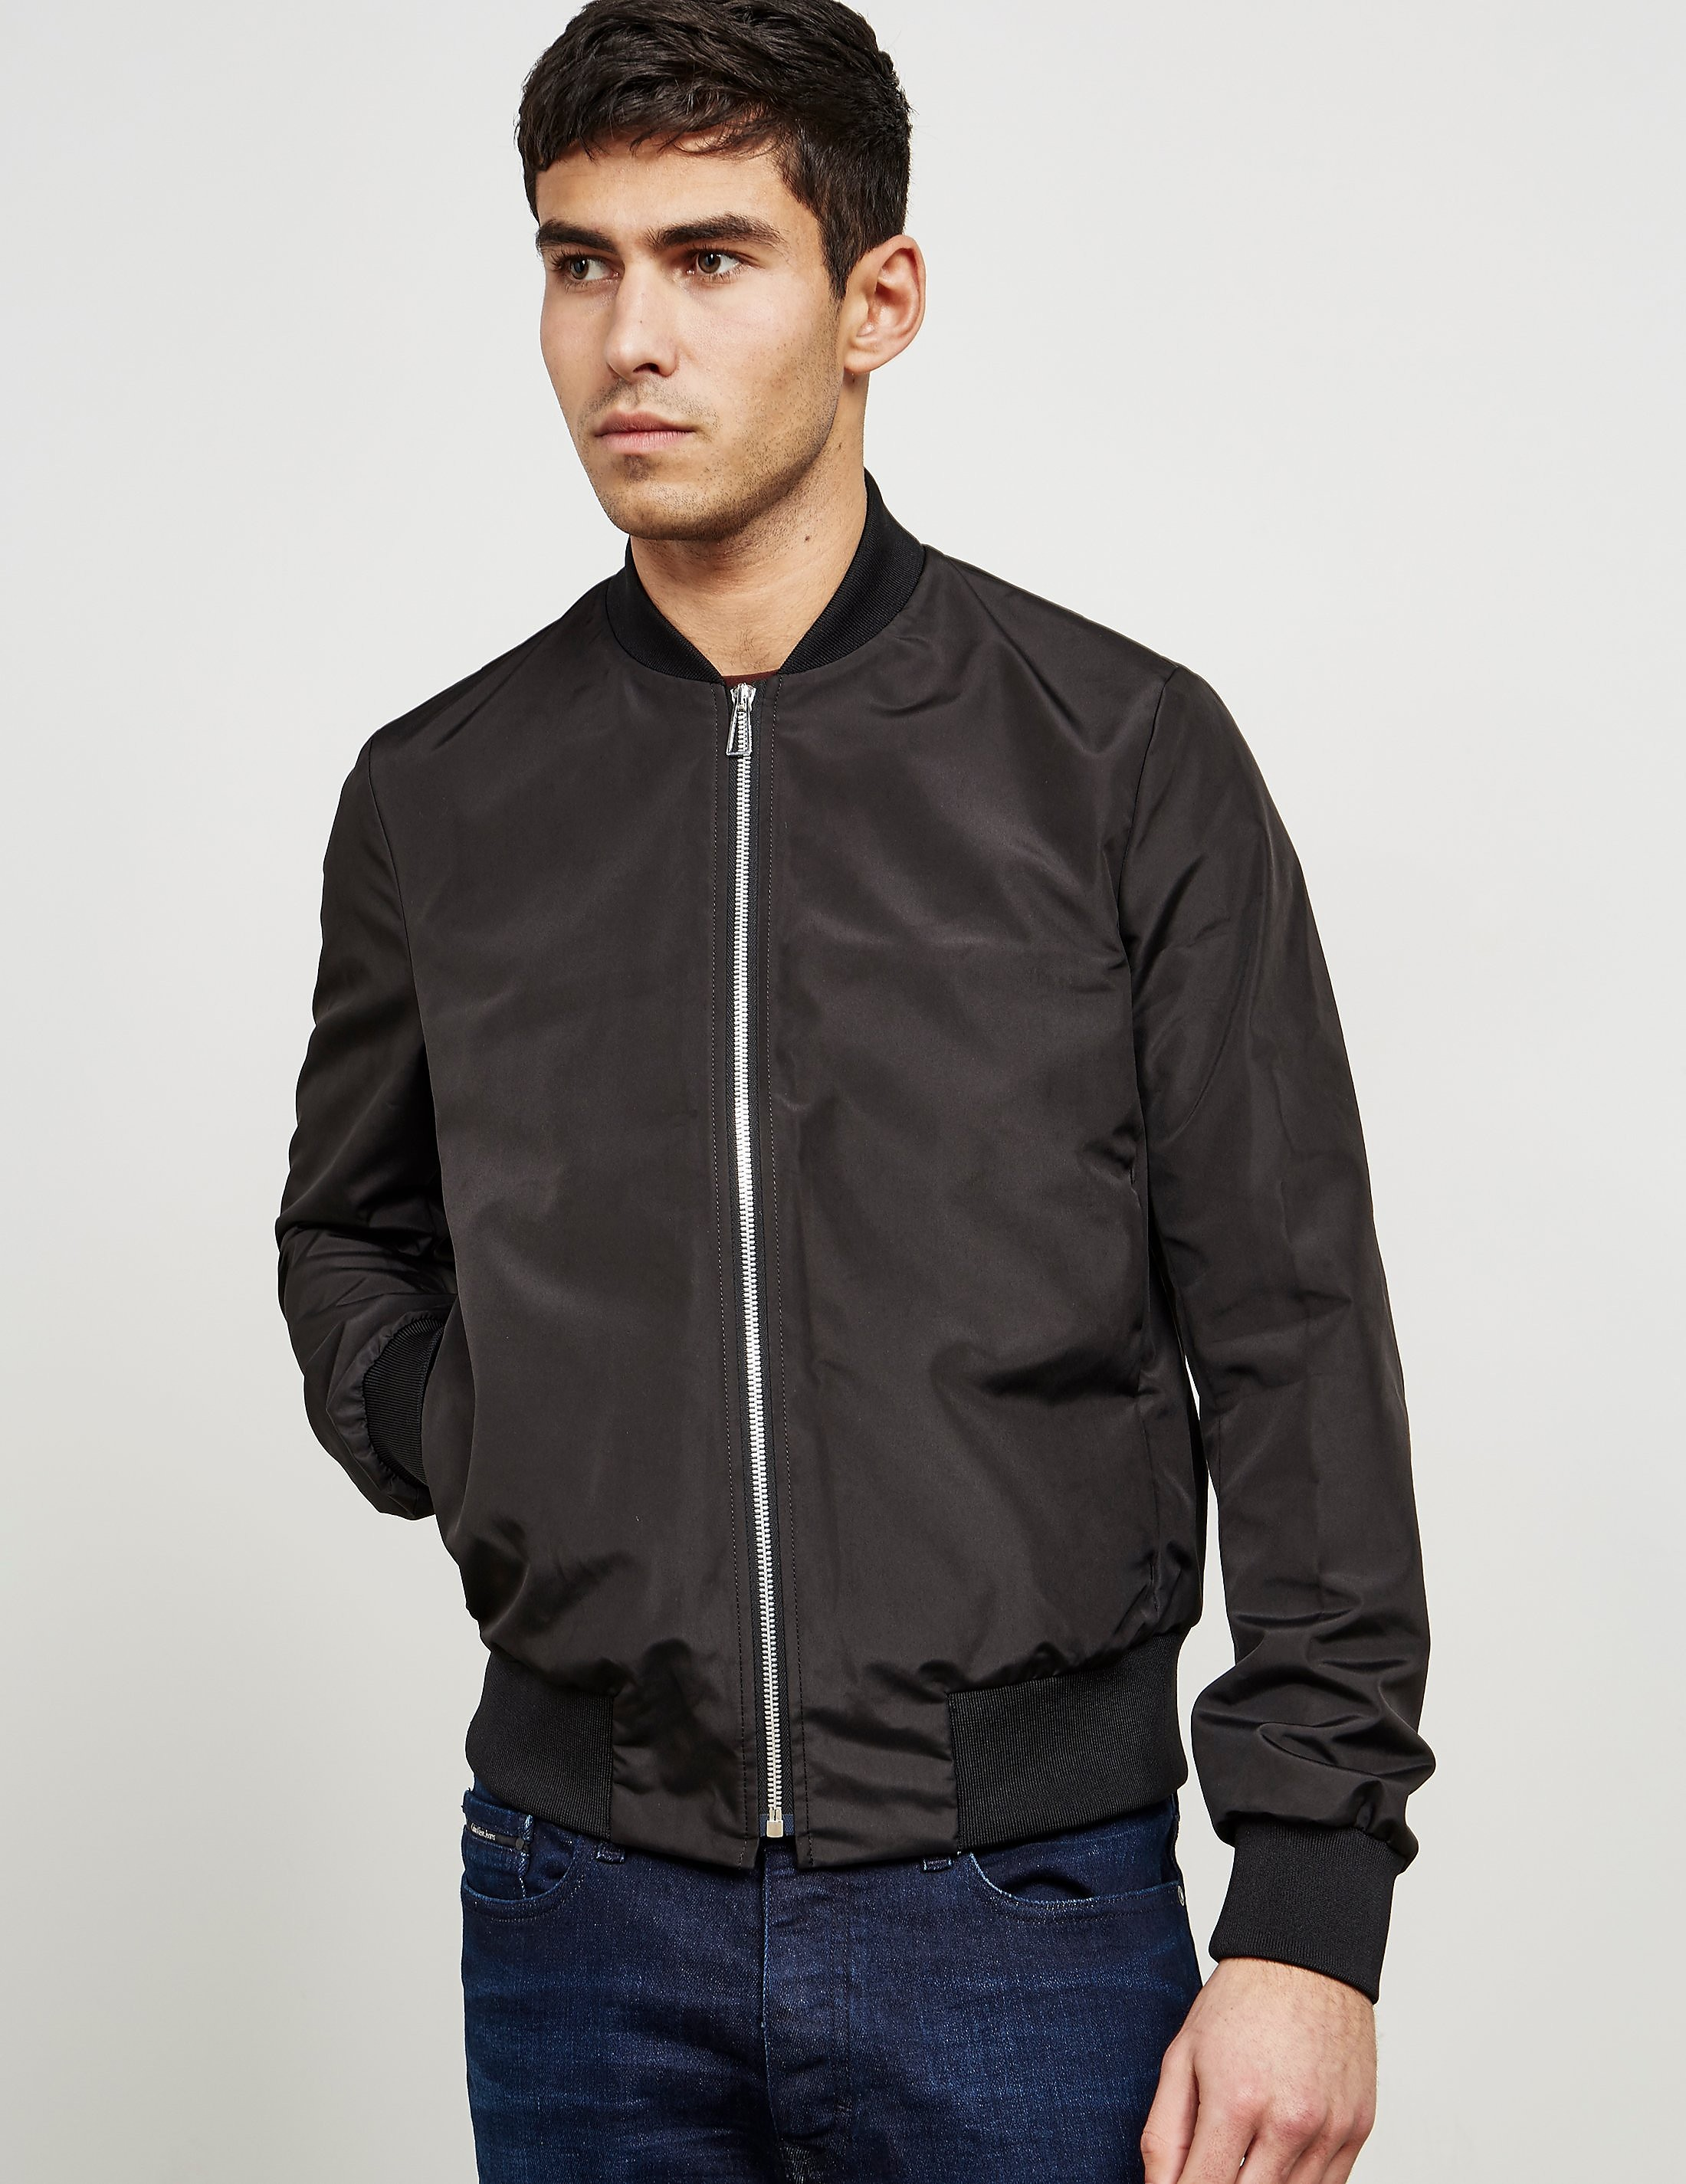 Paul Smith Water-Resistant Lightweight Bomber Jacket